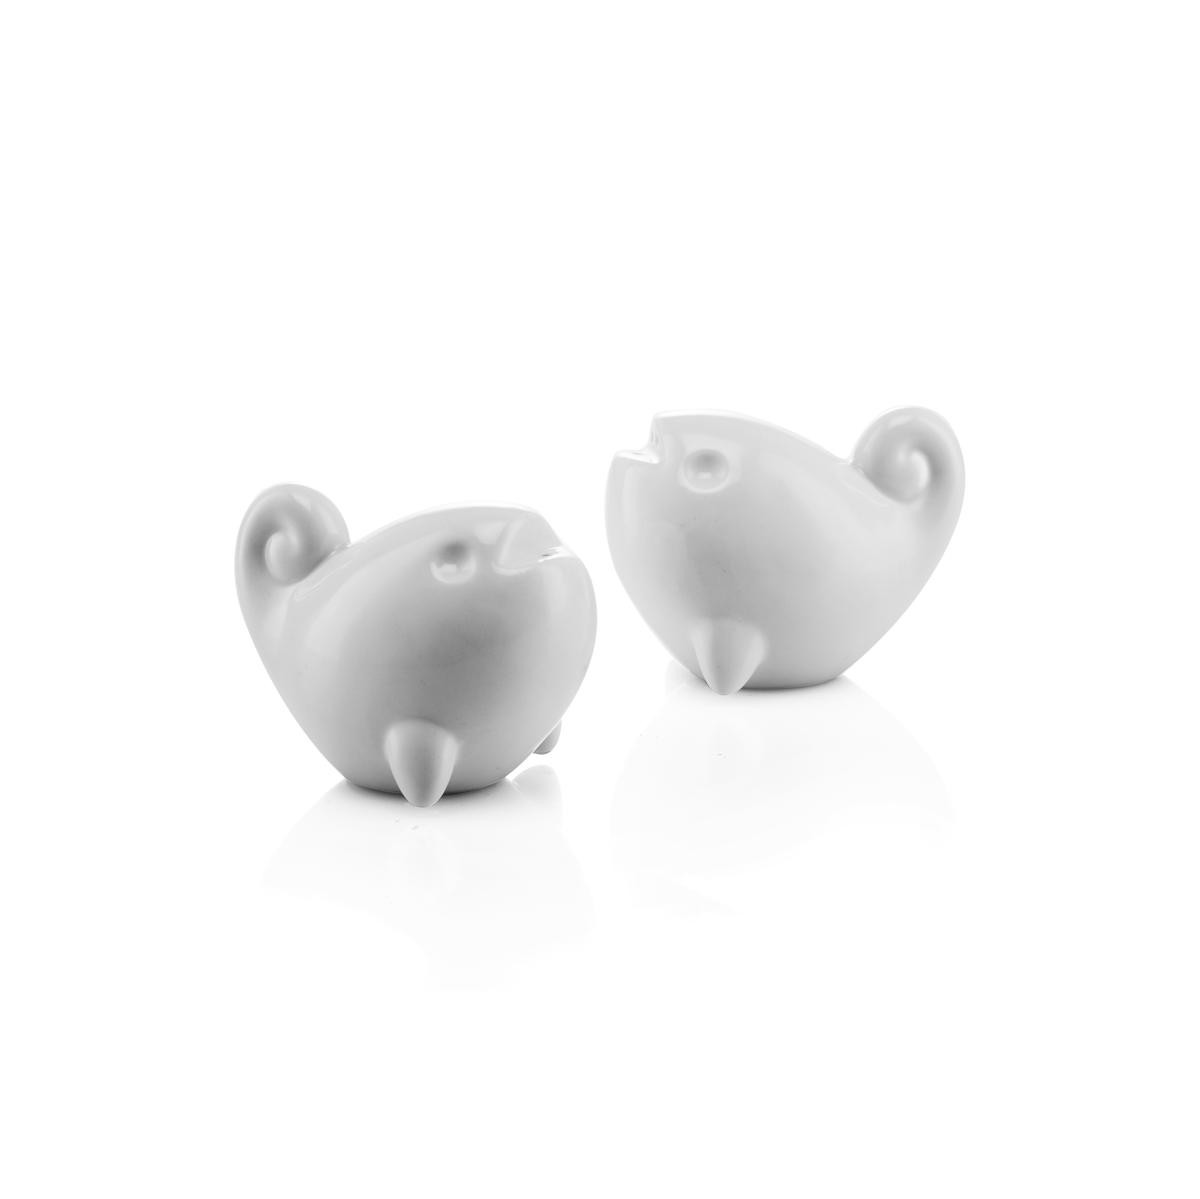 SALT AND PEPPER SET - oh my sole